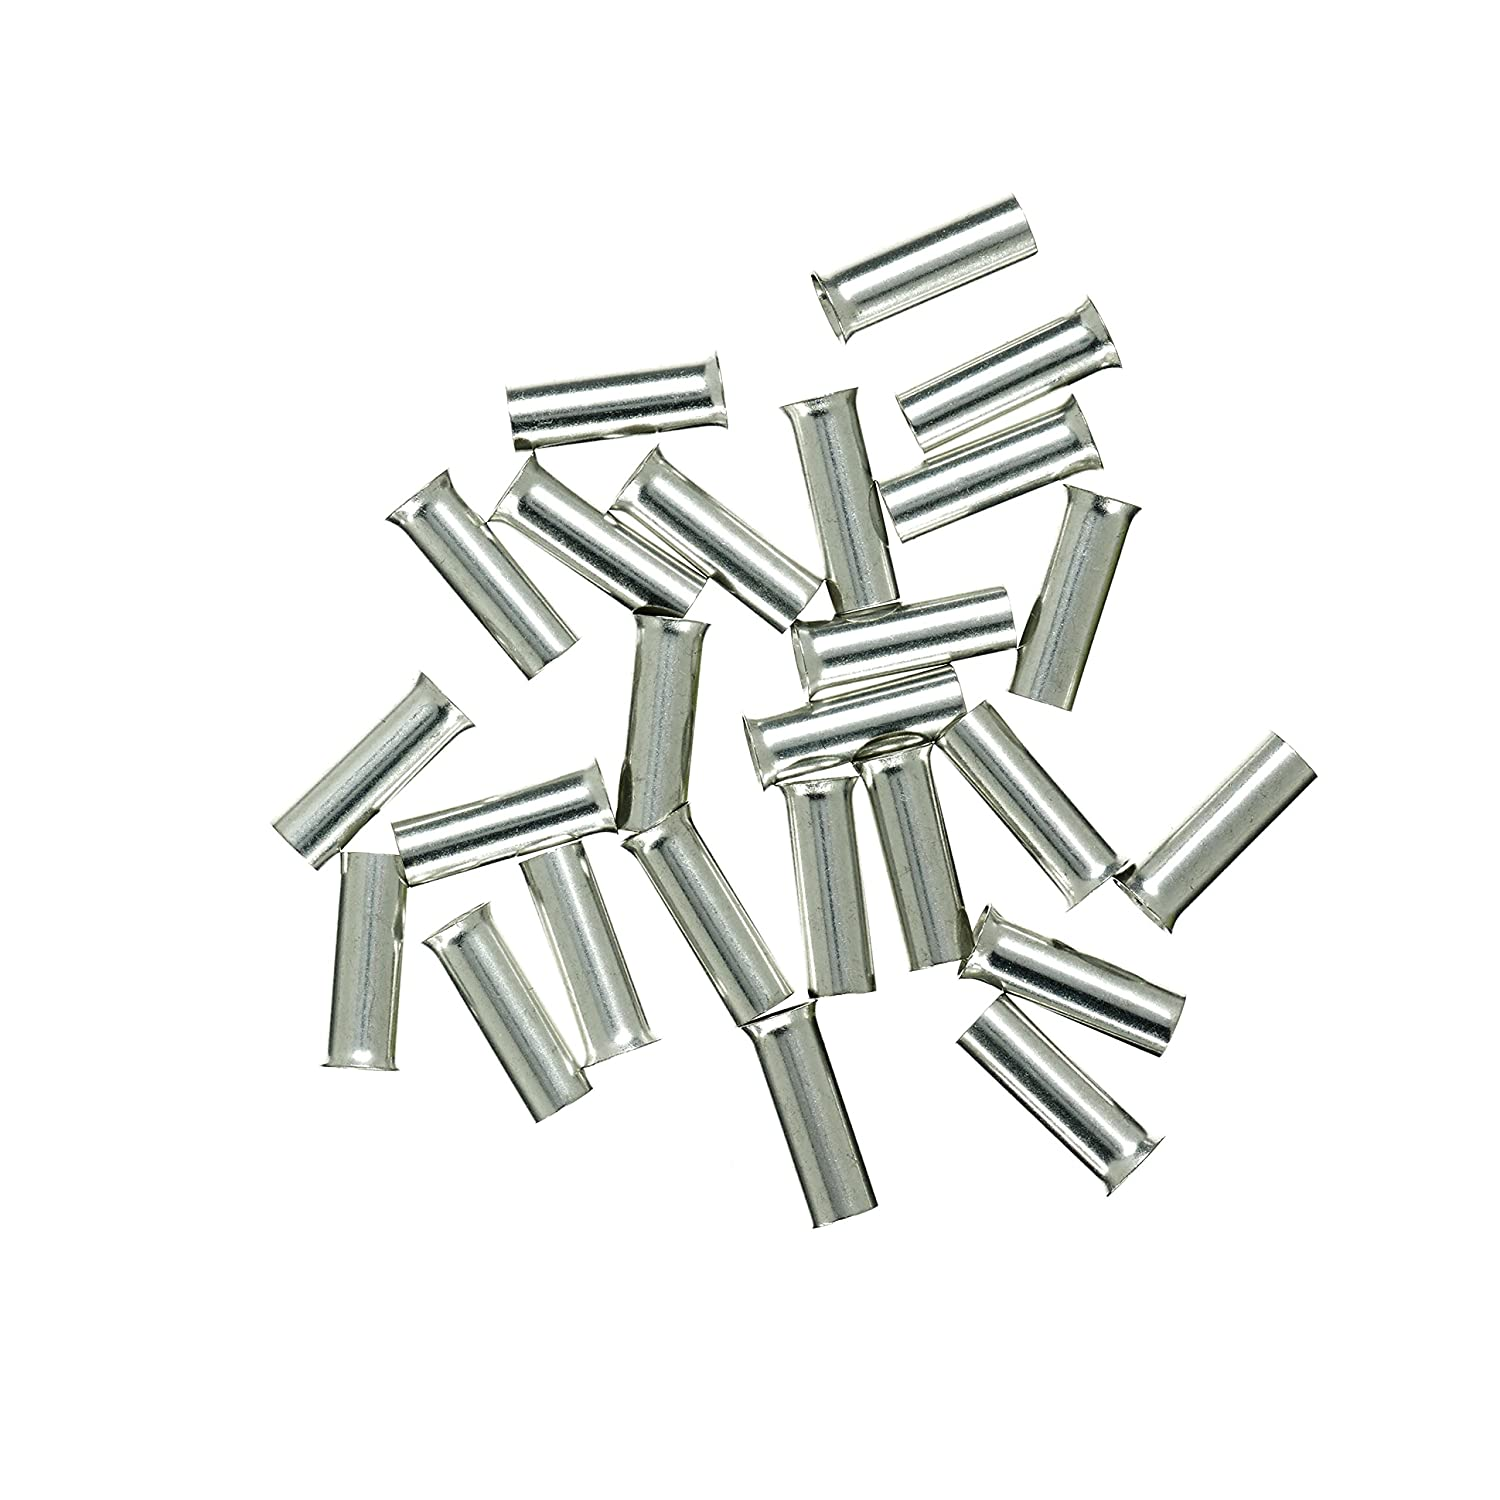 Haupa Tinned Wire End Ferrules 6/mm/² Pack of 25, BLV270102